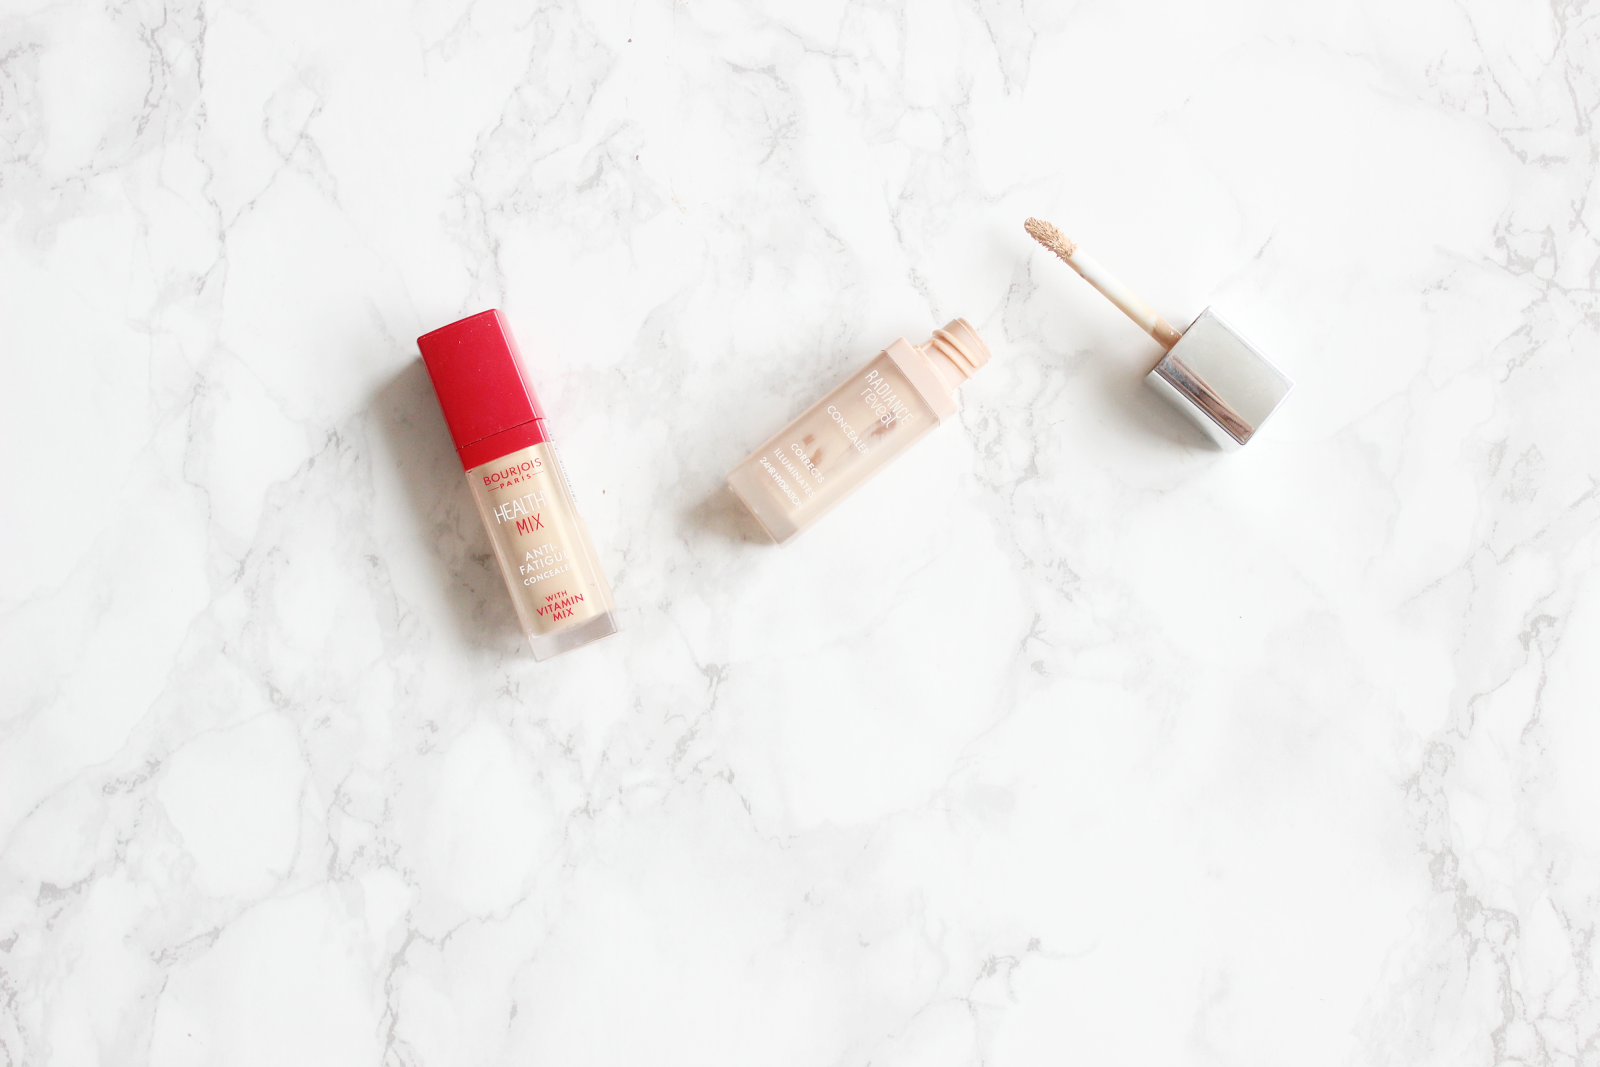 Bourjois Healthy Mix Concealer Vs Radiance Reveal Bourjois Healthy Mix Concealer Bourjois Healthy Mix Healthy Mix